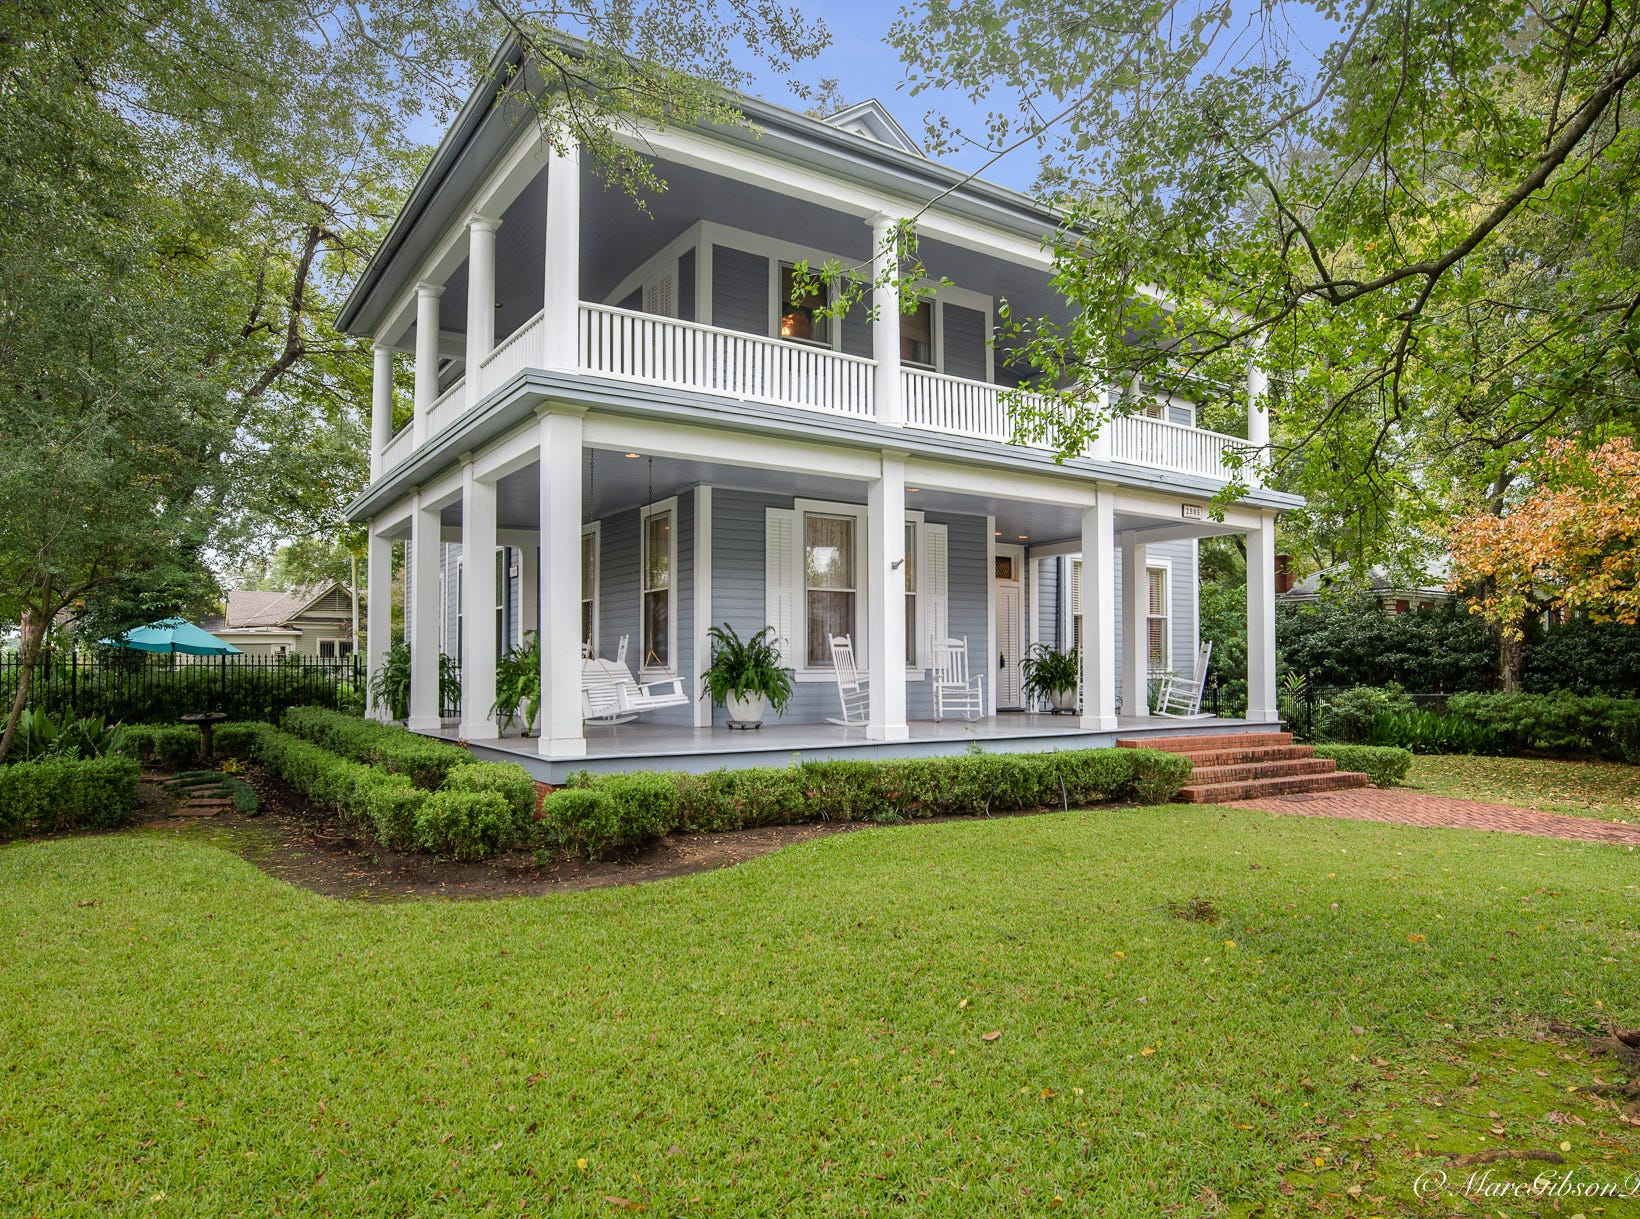 2505 Fairfield Ave.  Price: $395,000  Details: 4 bedrooms, 5 bathrooms, 3,977 square feet  Special features: 1902 updated Highland treasure with inviting porches, wraparound porch and balcony, elegant foyer, each bedroom has a private bath, master suite with sitting area, beautifully landscaped.  Contact: Lynn Roos,   455-6004